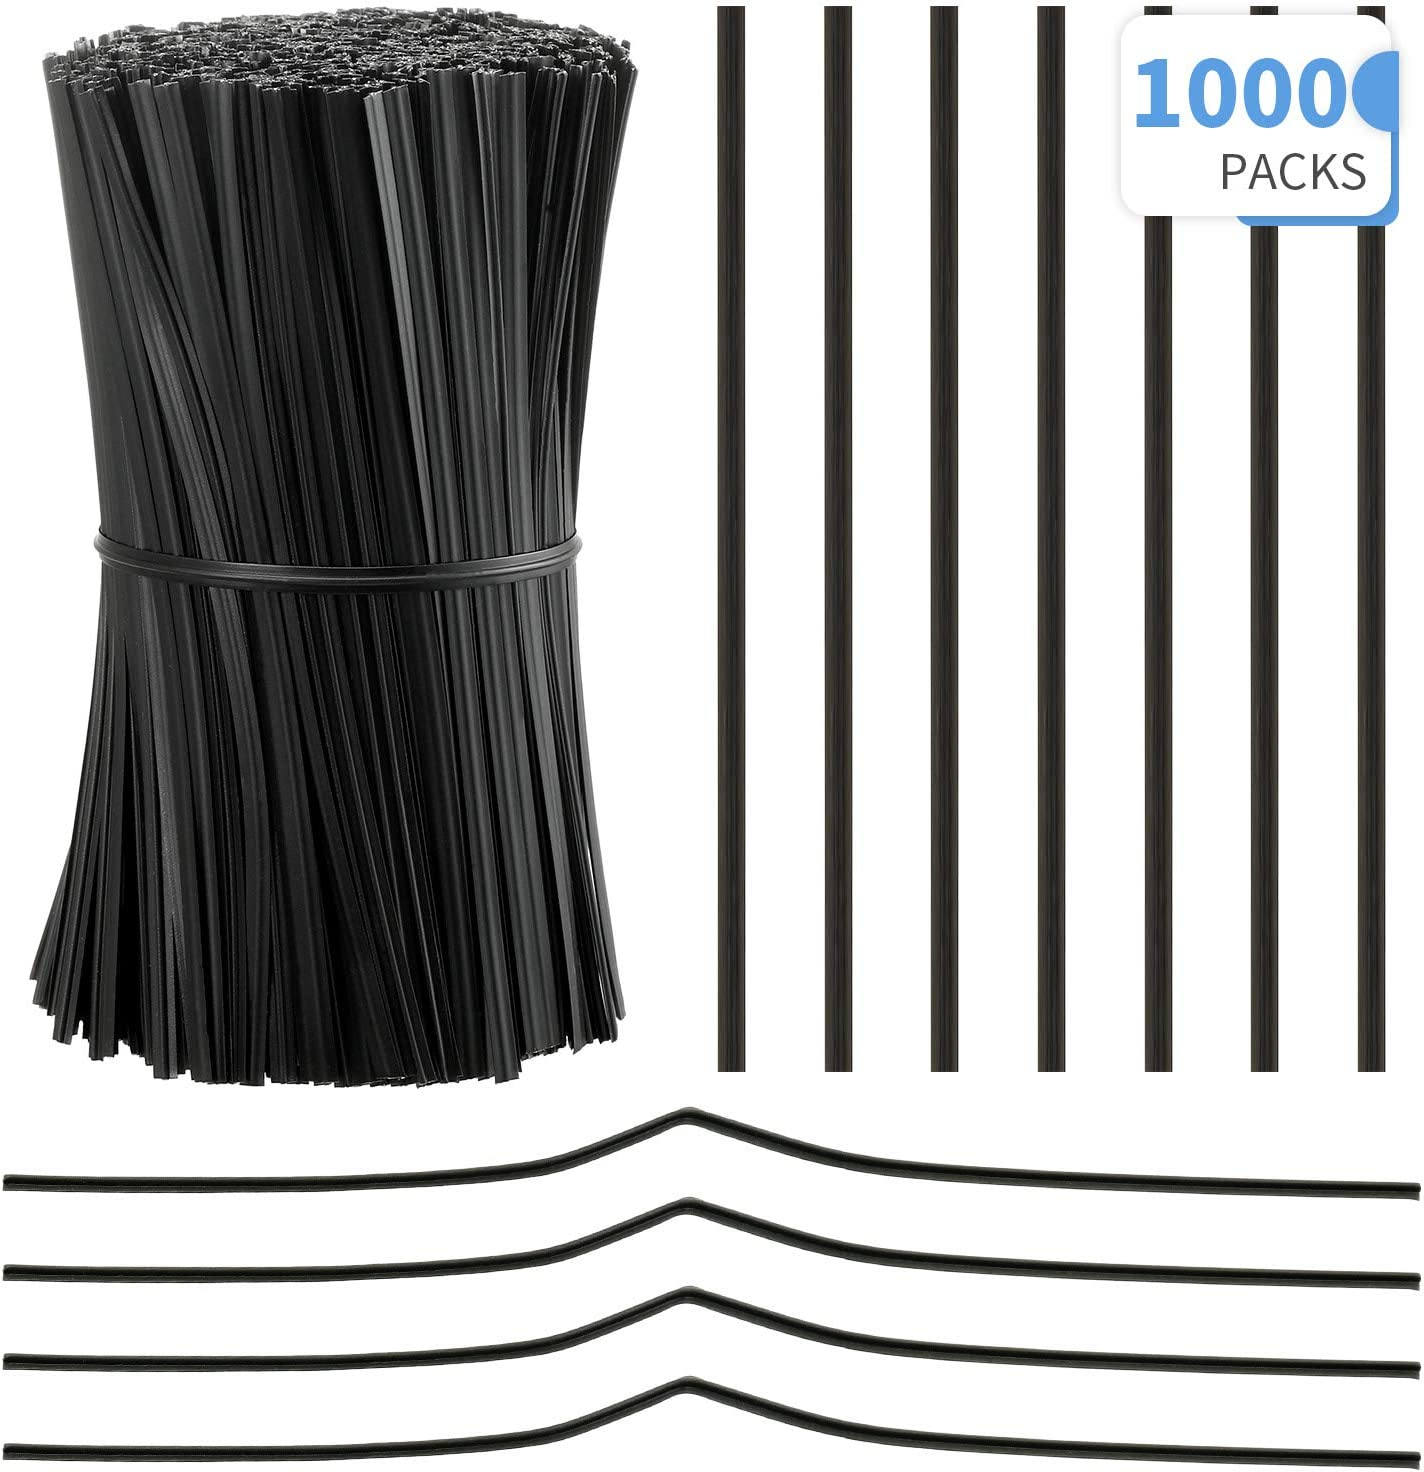 1000 Pieces Plastic Coated Twist Ties Twist Cord Wire Cable Ties Reusable Nose Bridge Strips for Party Cello Candy Bread Bags Cake Pops Black 3.9 Inch Length